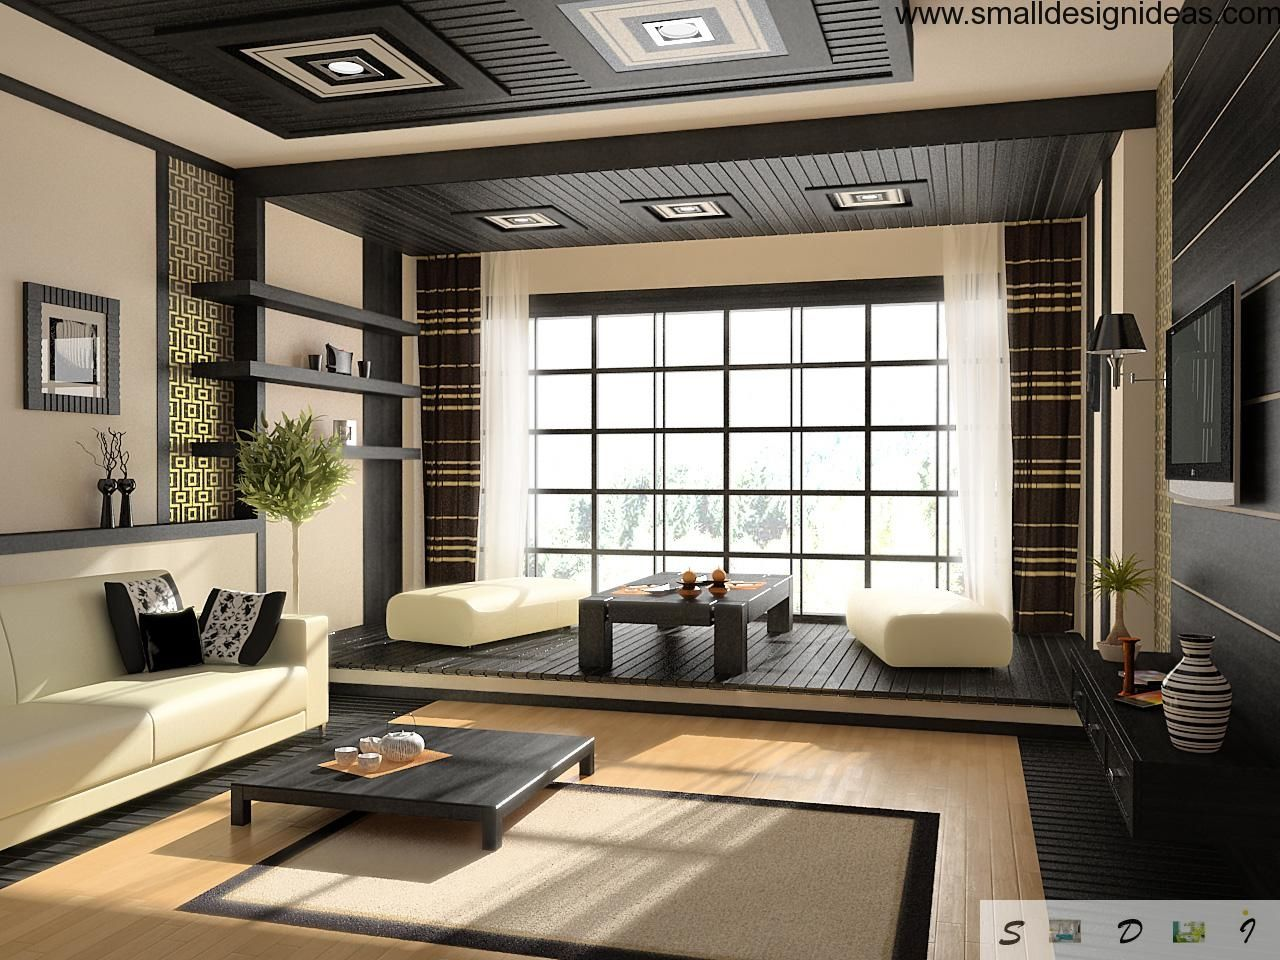 Modern Japanese Interior Design 10 things to know before remodeling your interior into japanese